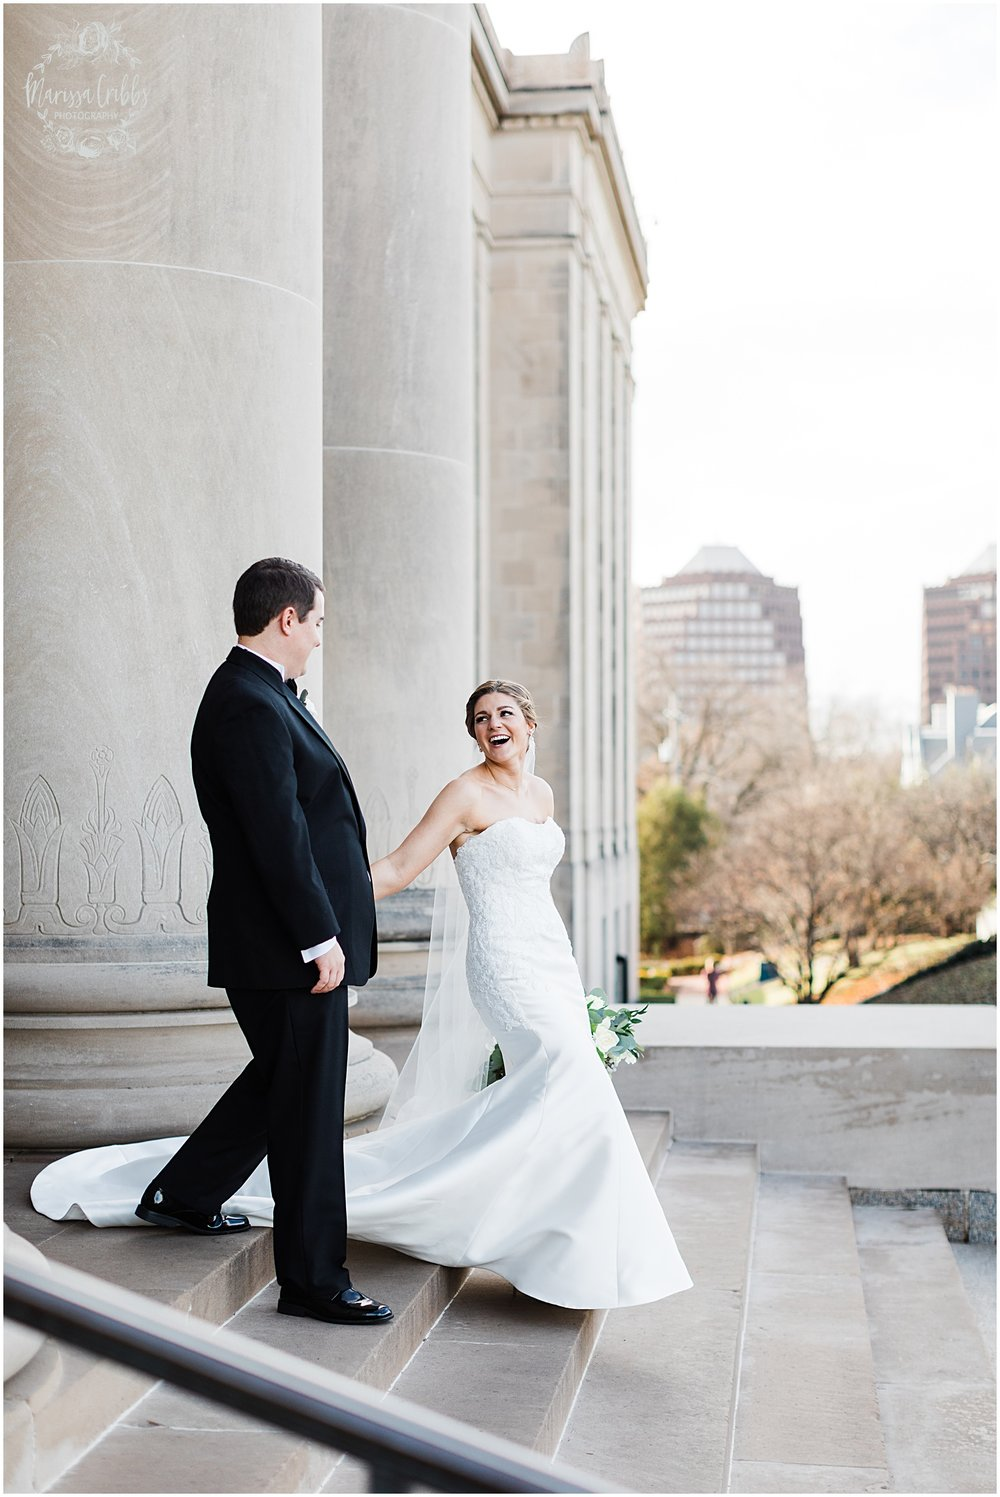 JOE & CAROLINE MARRIED | INDIAN HILLS COUNTRY CLUB | MARISSA CRIBBS PHOTOGRAPHY_7225.jpg